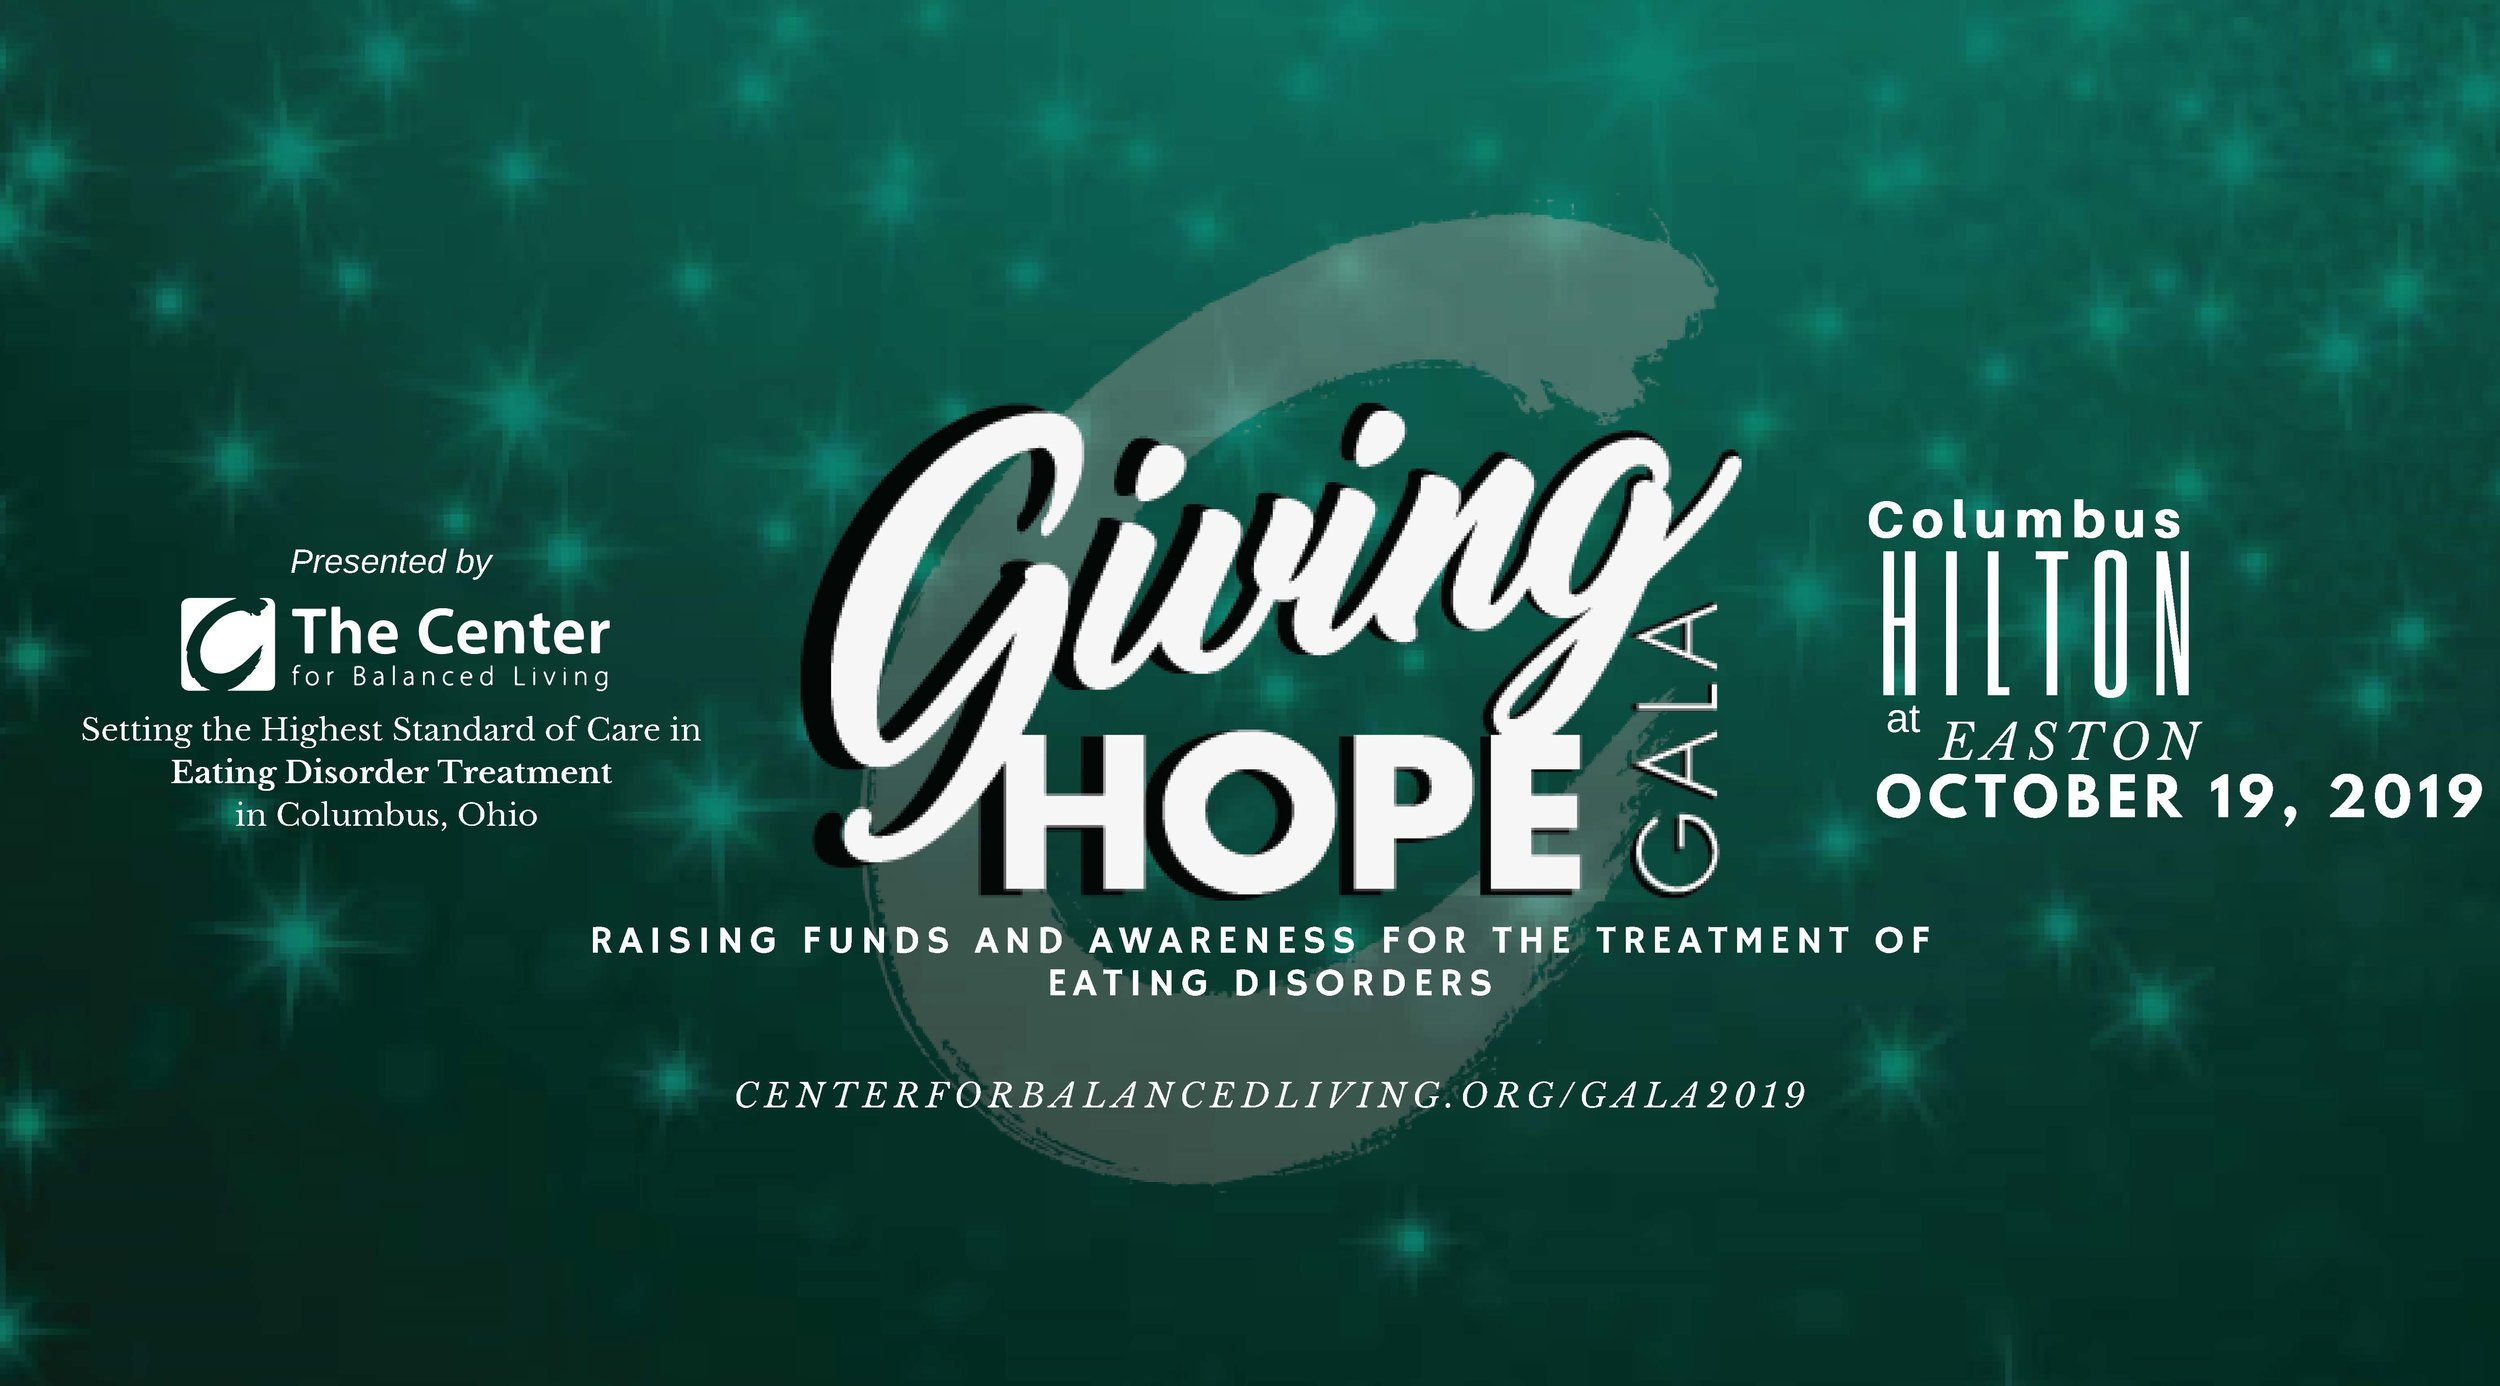 Donate an item toward our Giving Hope Gala Silent Auction! - For questions regarding the Giving Hope Gala auction item donations, sponsorships, or tickets, please contact Jill Fondriest at jill.fondriest@thecenterforbalancedliving.org